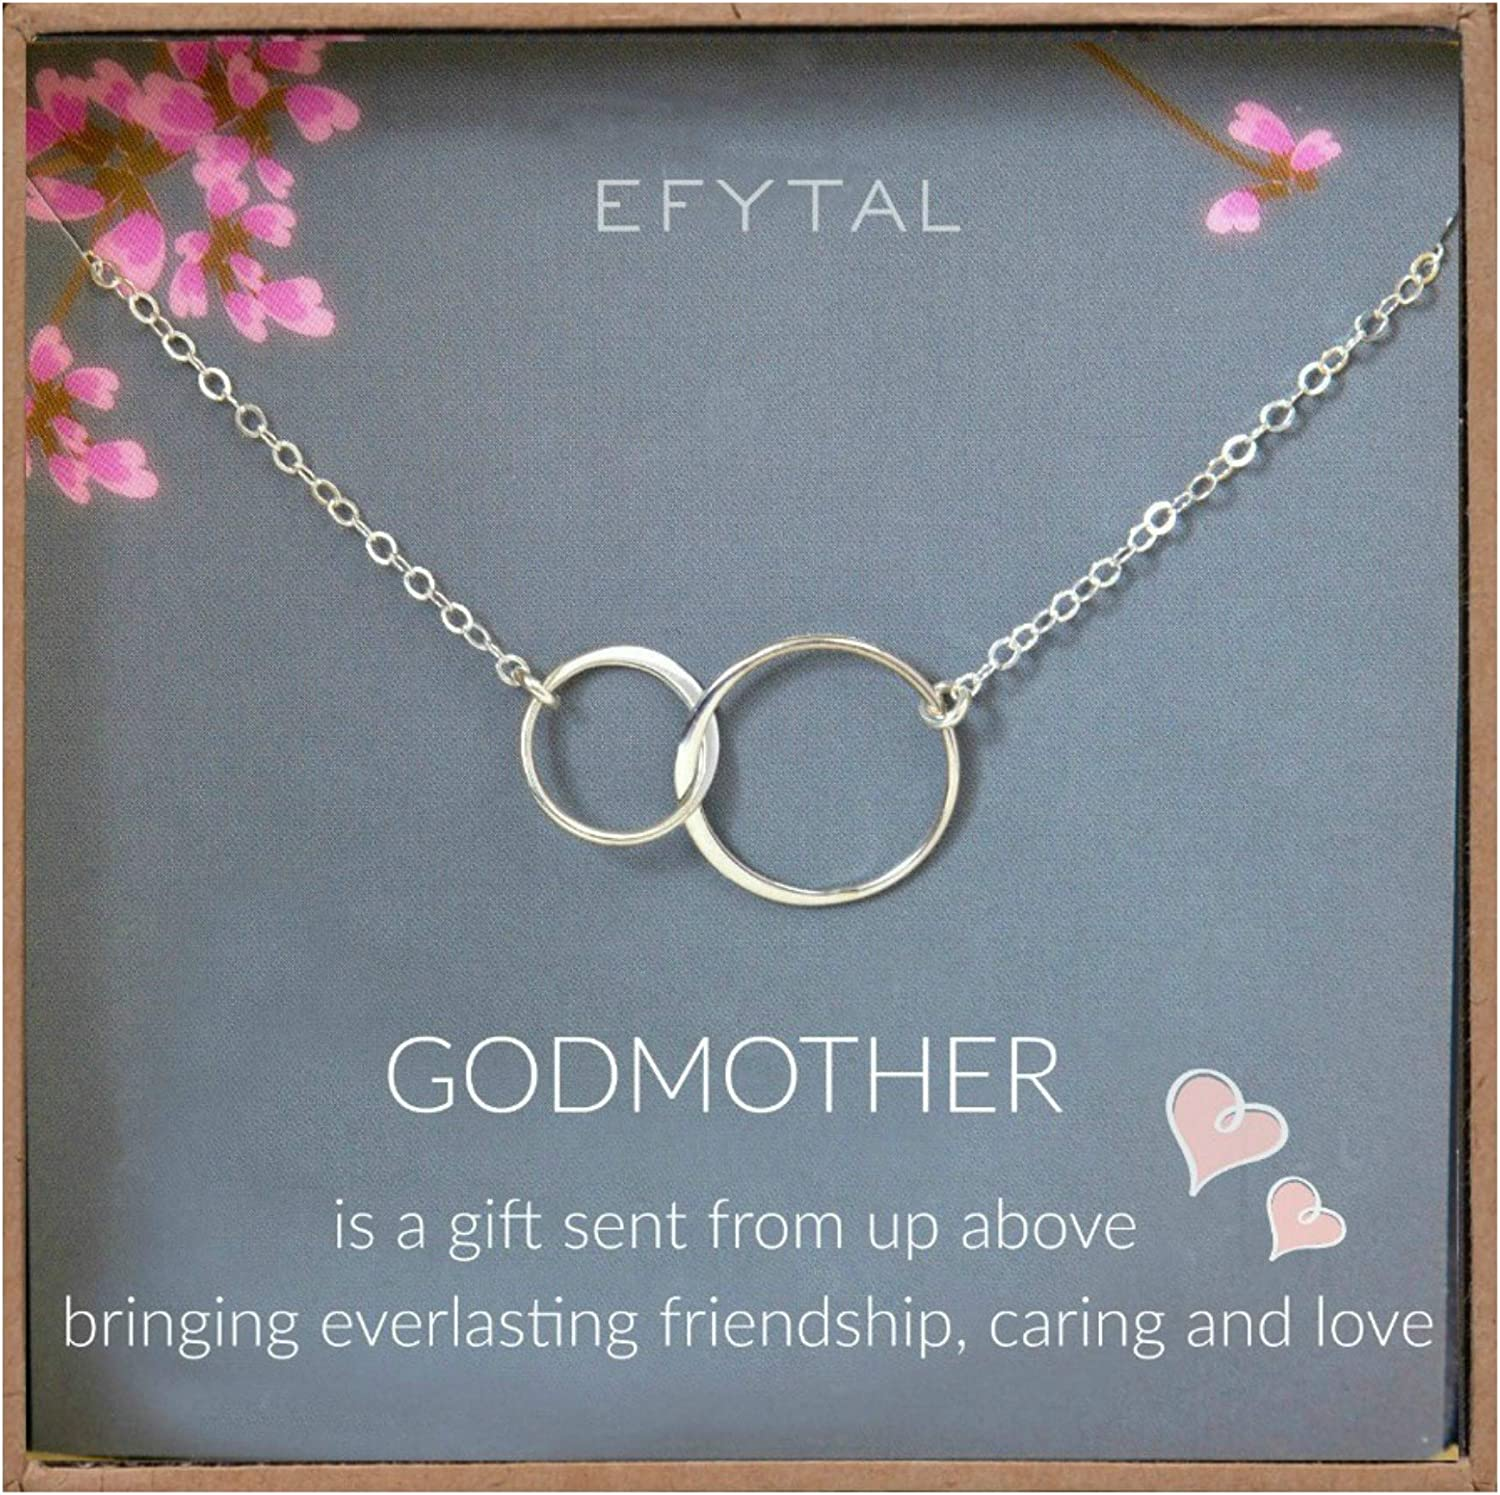 Efytal Godmother Gifts From Godchild Sterling Silver Interlocking Circle Necklace Proposal Gift For Girl Baptism Amazon Ca Jewelry